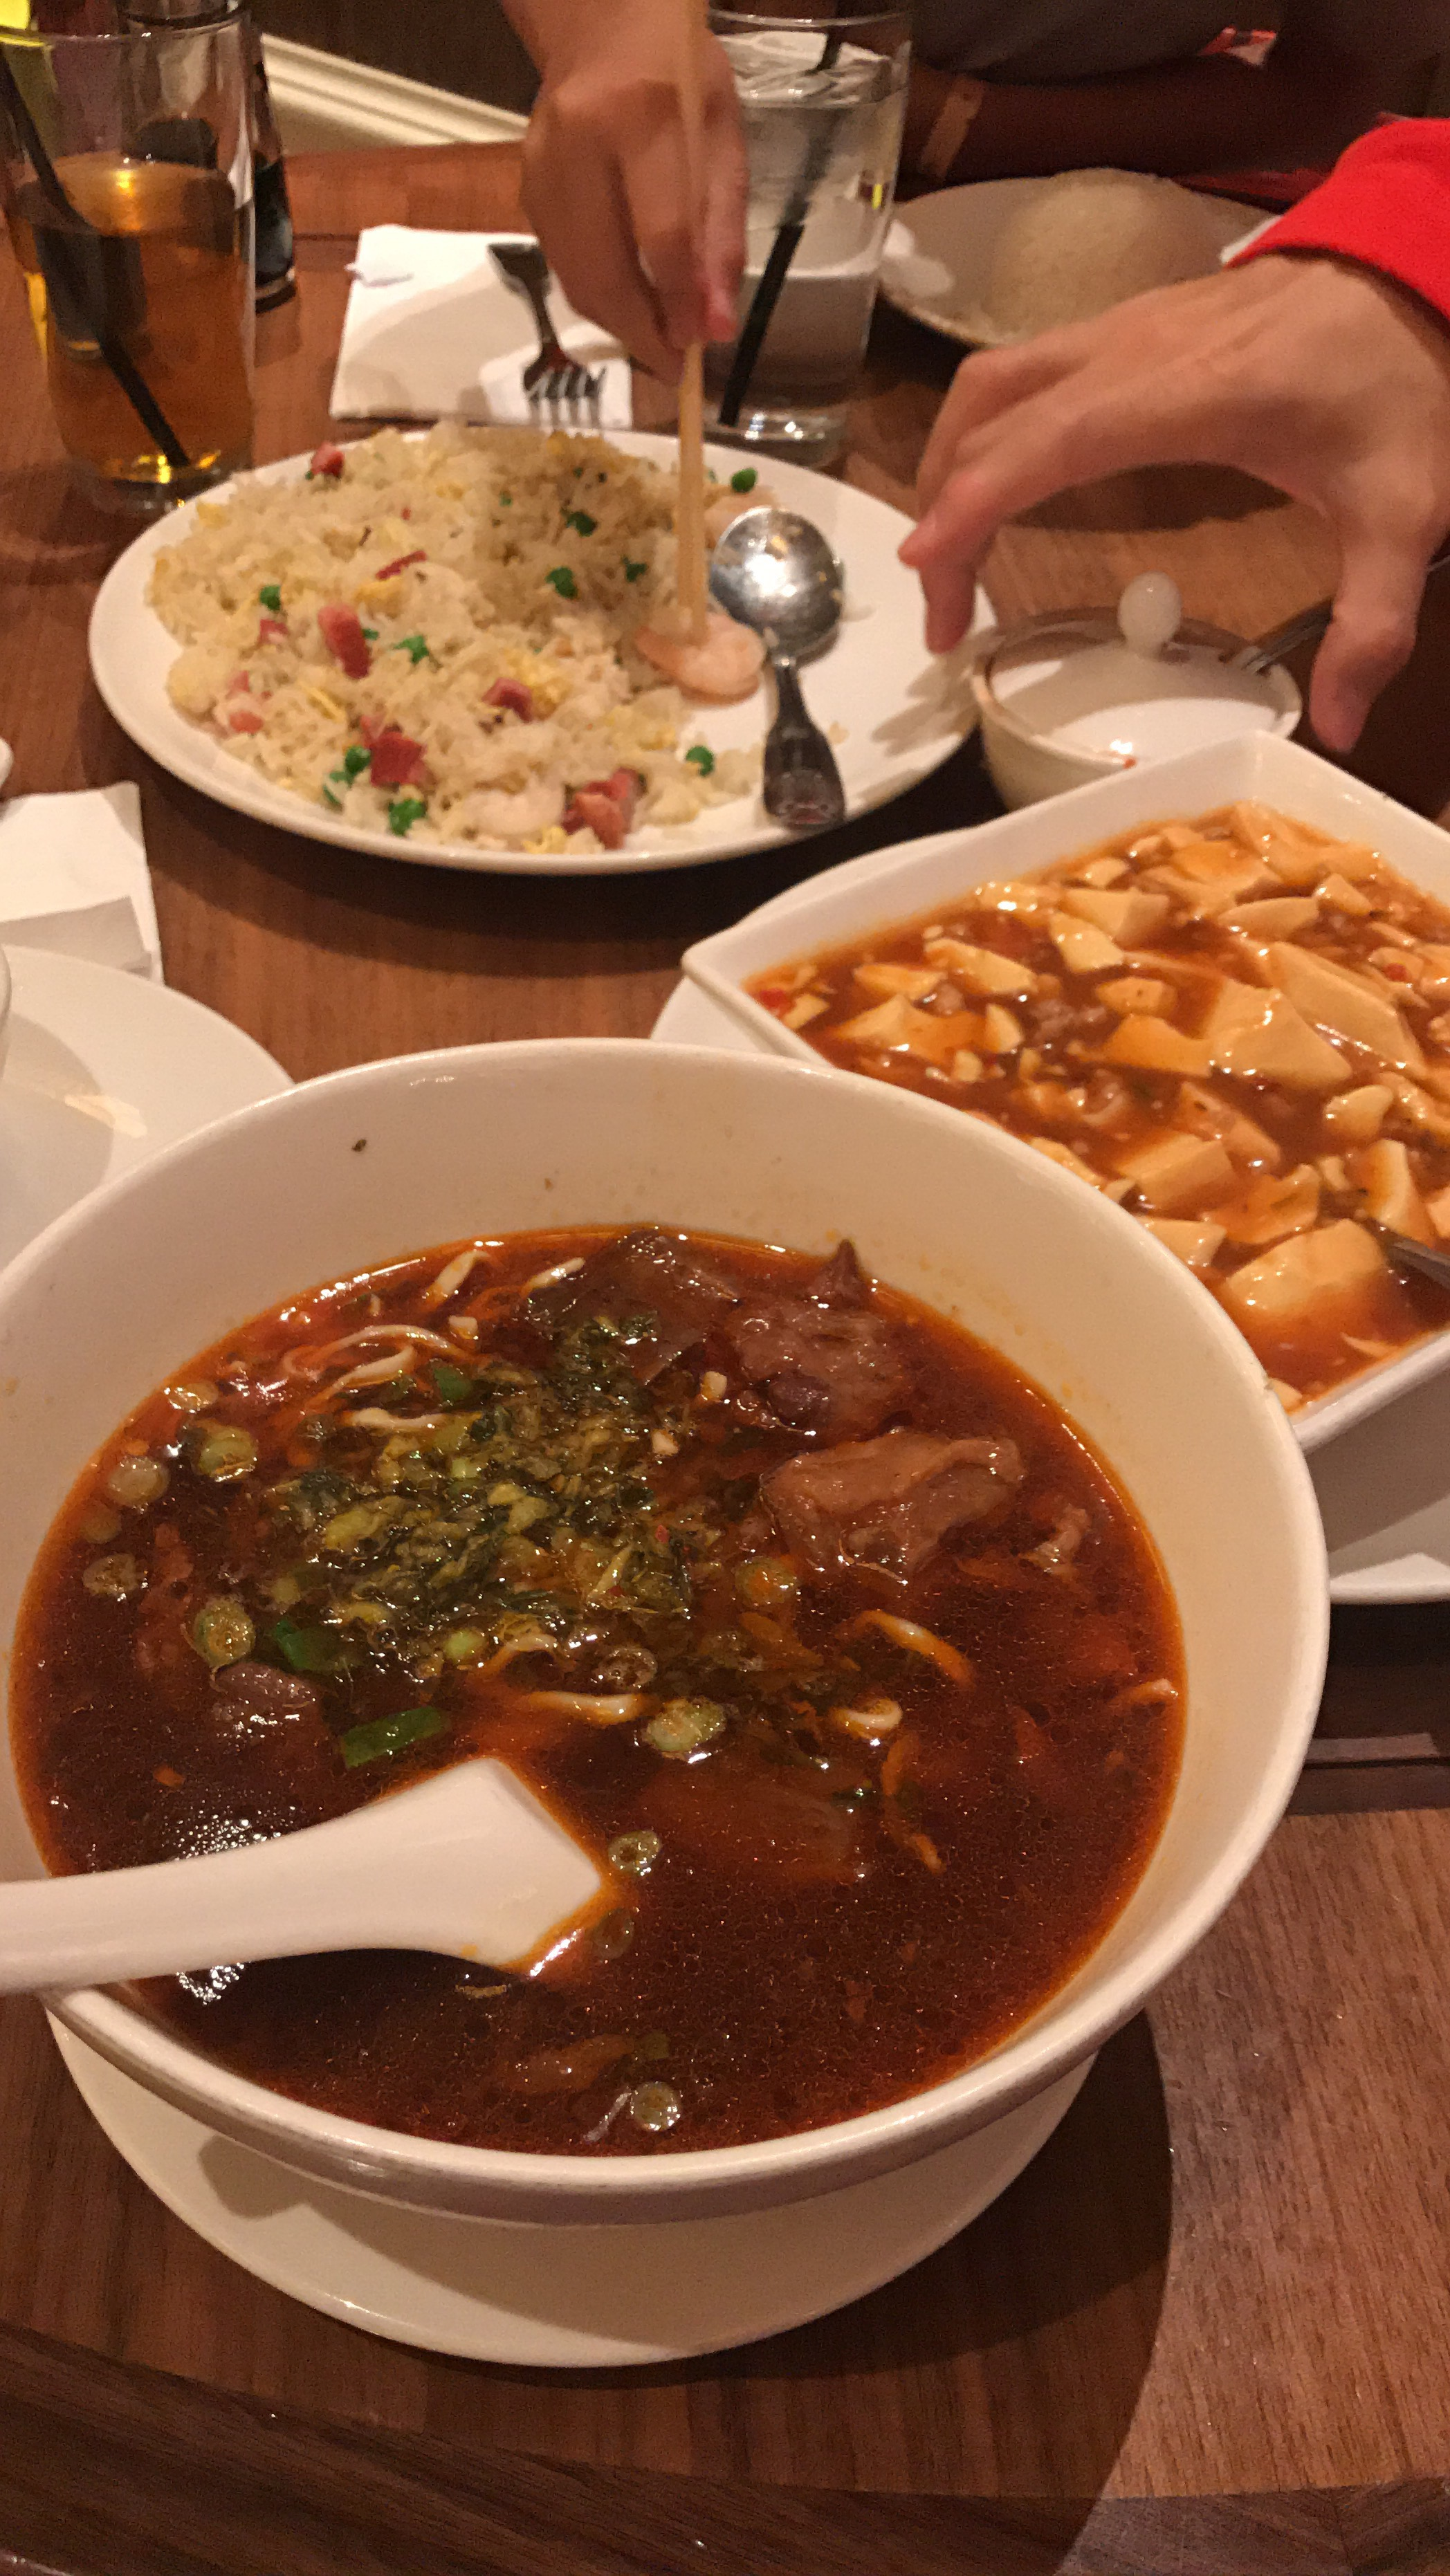 Recommended by my friend, Amy Siew. I personally think the spicy beef brisket noodle is quite good though cannot compare to the authentic chinese restaurants in Asia. The stir fried black pepper beef is qte tender n I think it was quite tasty. The rest of the dishes were below expectation.